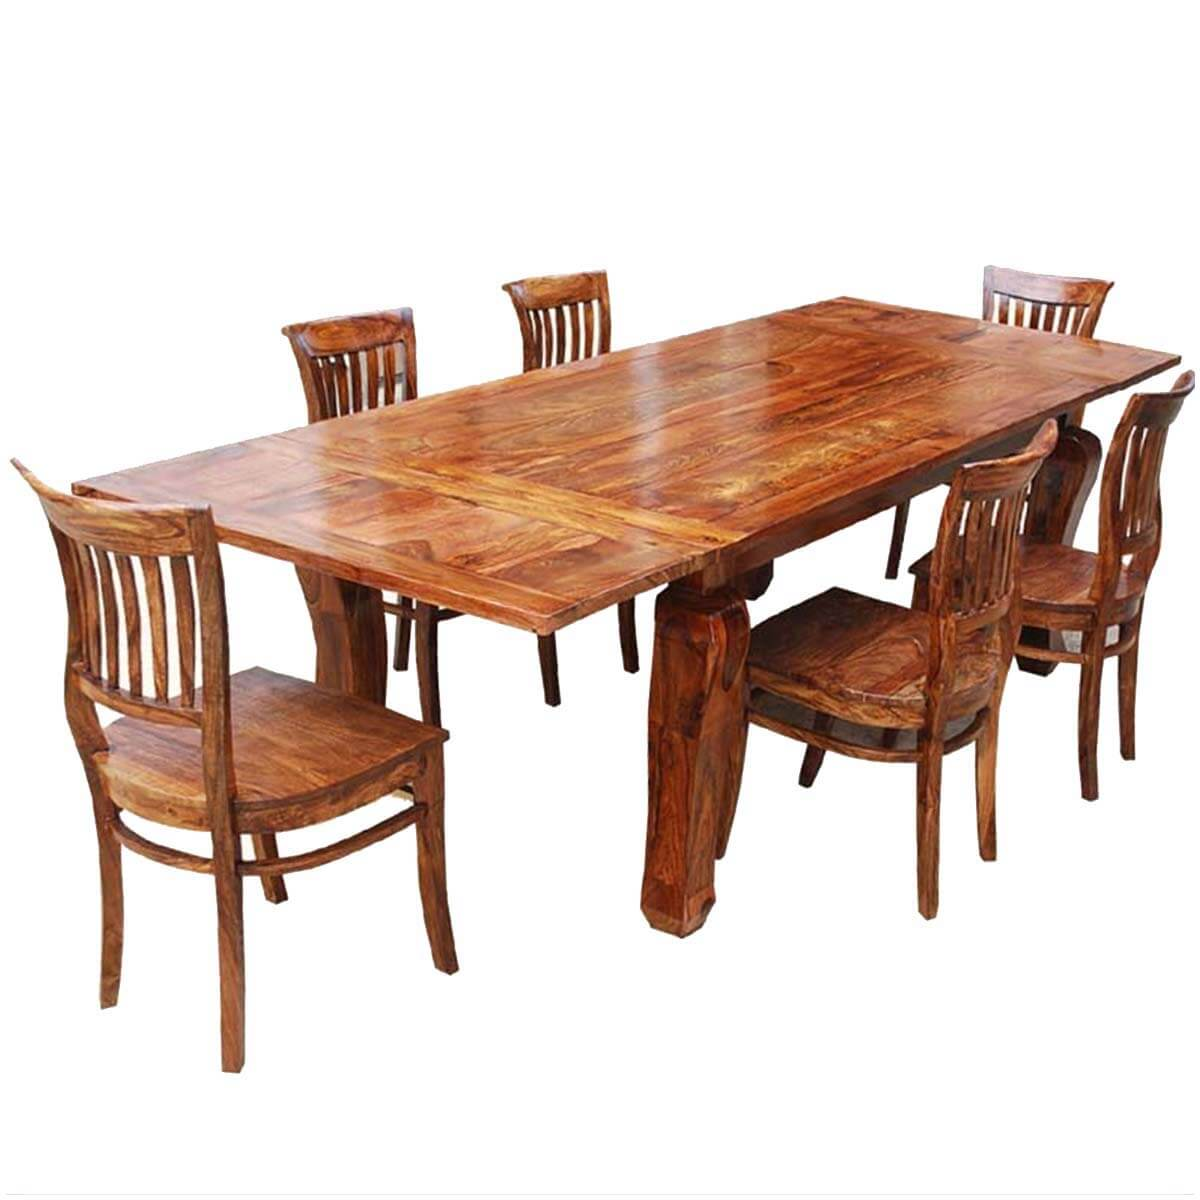 3a06d27f992 Rustic Lincoln Study Dining Table   6 Barrel-back Chairs w Extension. Hover  to zoom